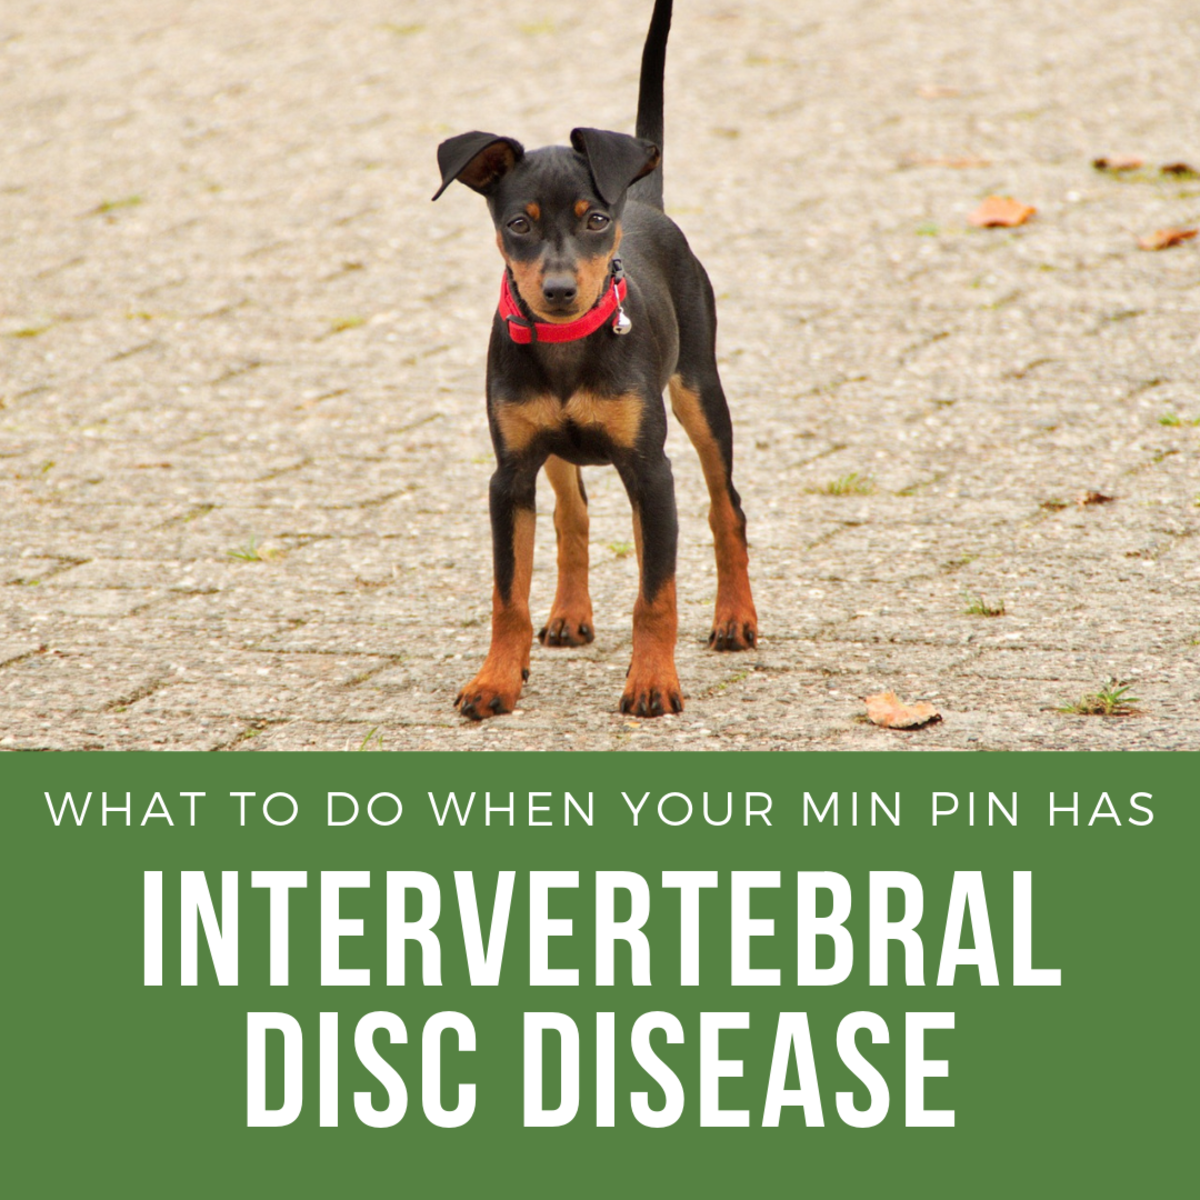 Does Your Min Pin Have Intervertebral Disc Disease Pethelpful